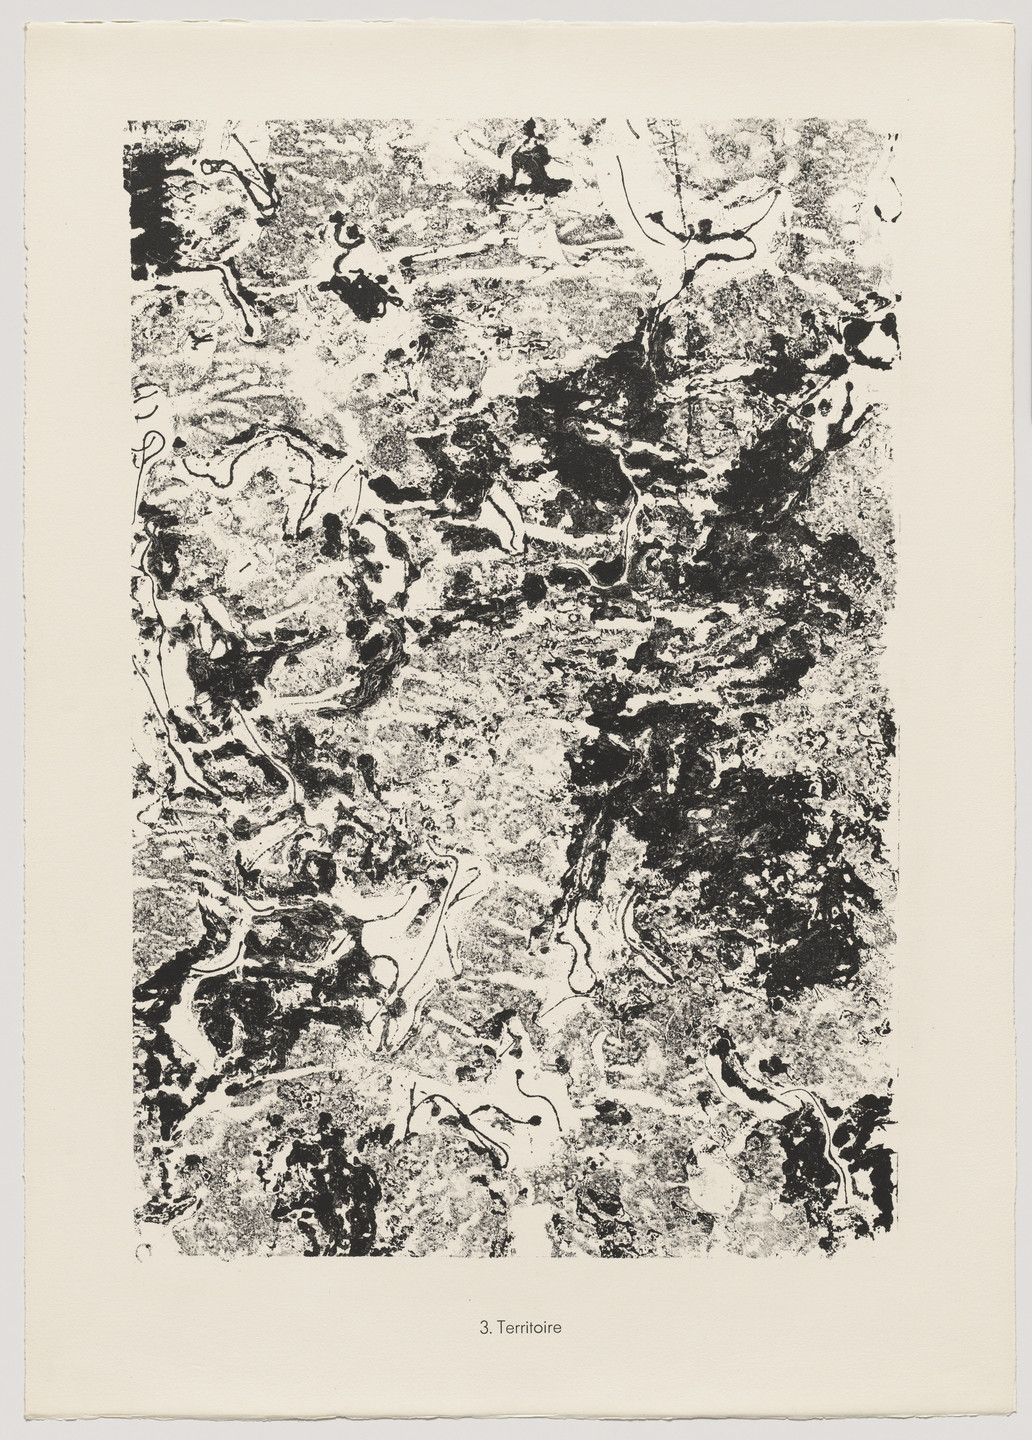 Jean Dubuffet. Territory (Territoire) from the portfolio Theater of the Earth (Théâtre du sol) from Phenomena (Les Phénomènes). 1959